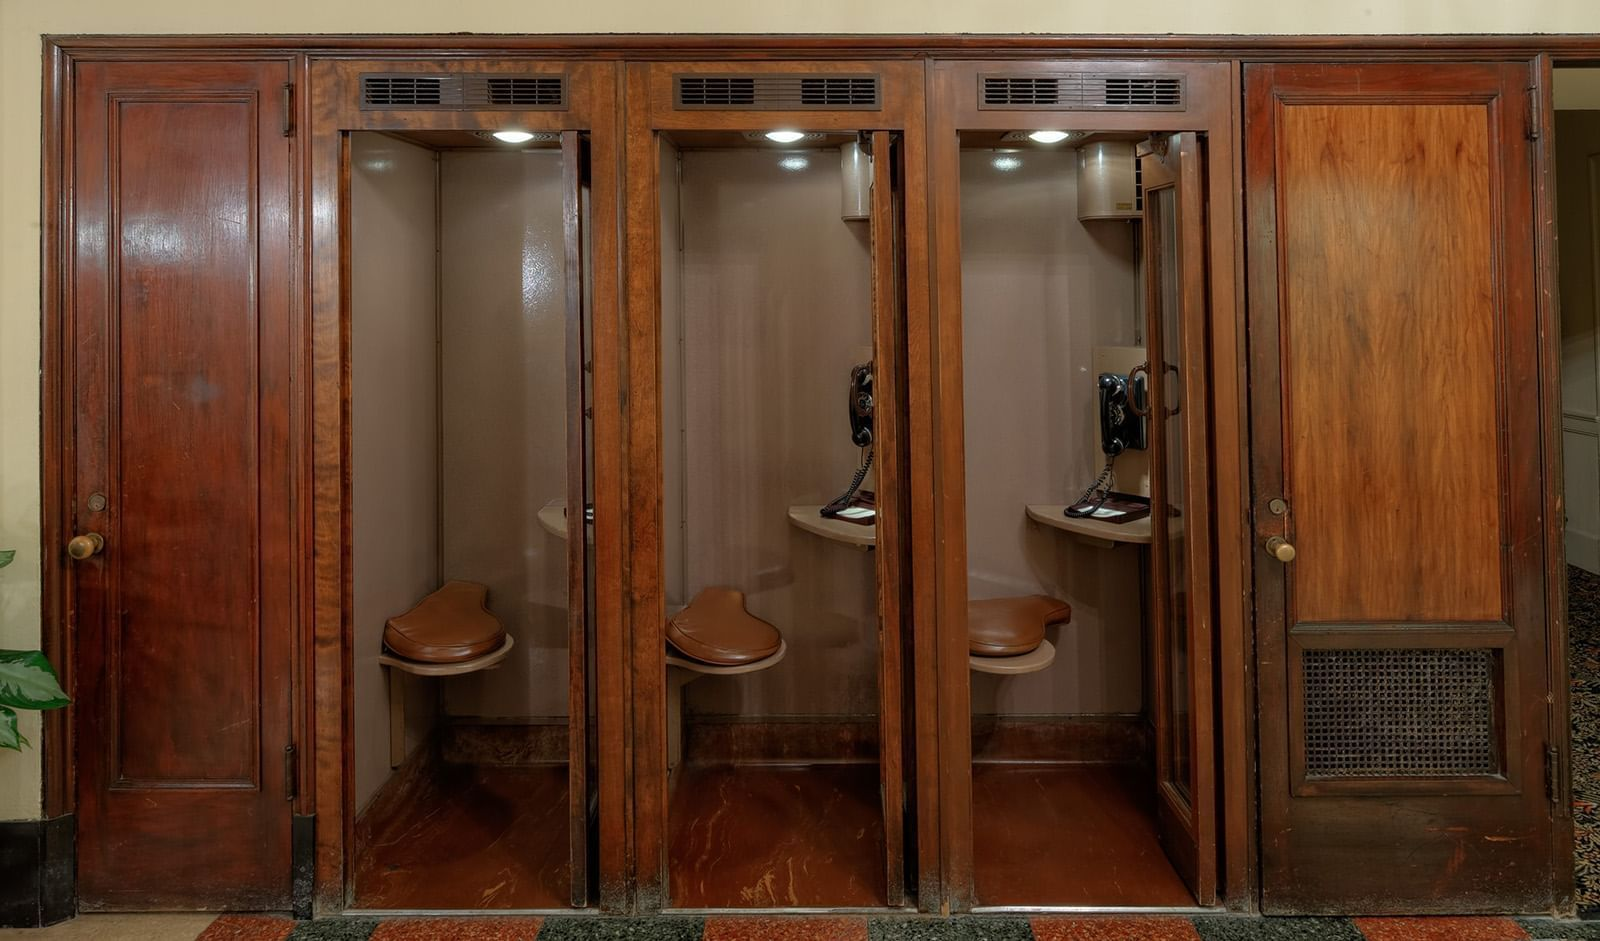 Vintage Phone Booths at The Peabody Memphis